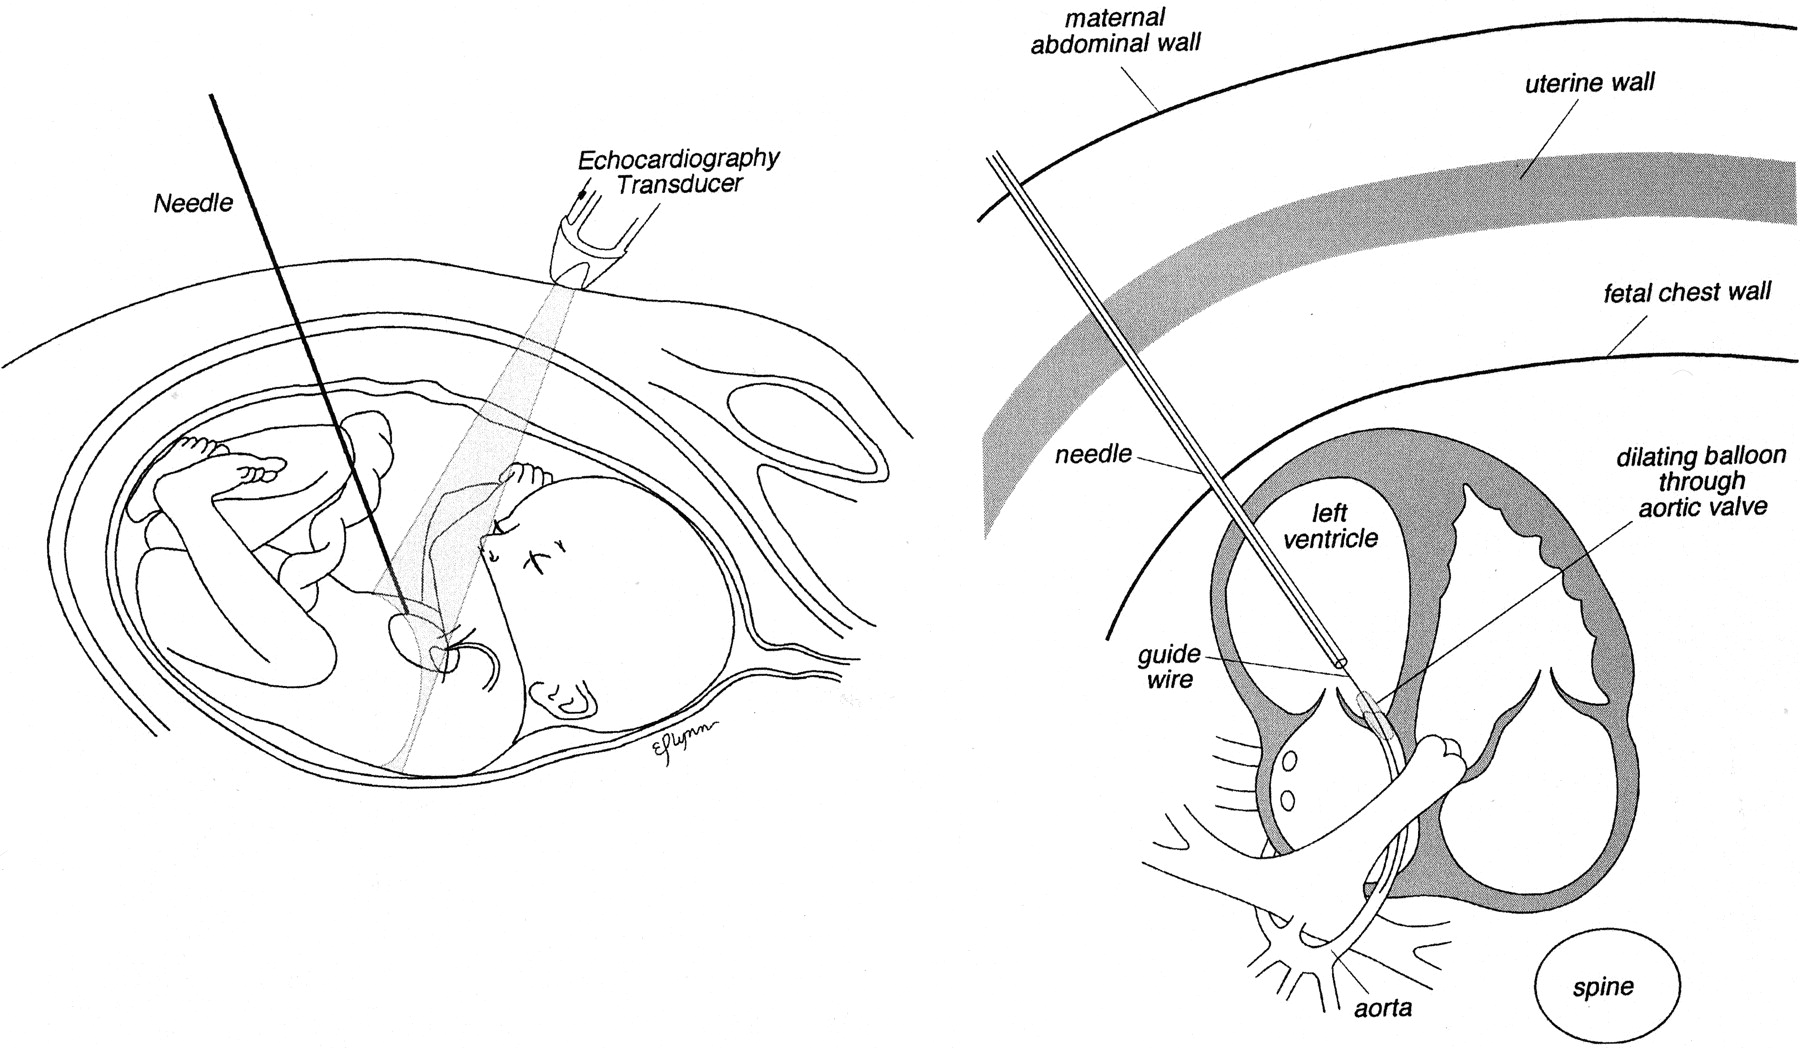 Balloon Dilation Of Severe Aortic Stenosis In The Fetus